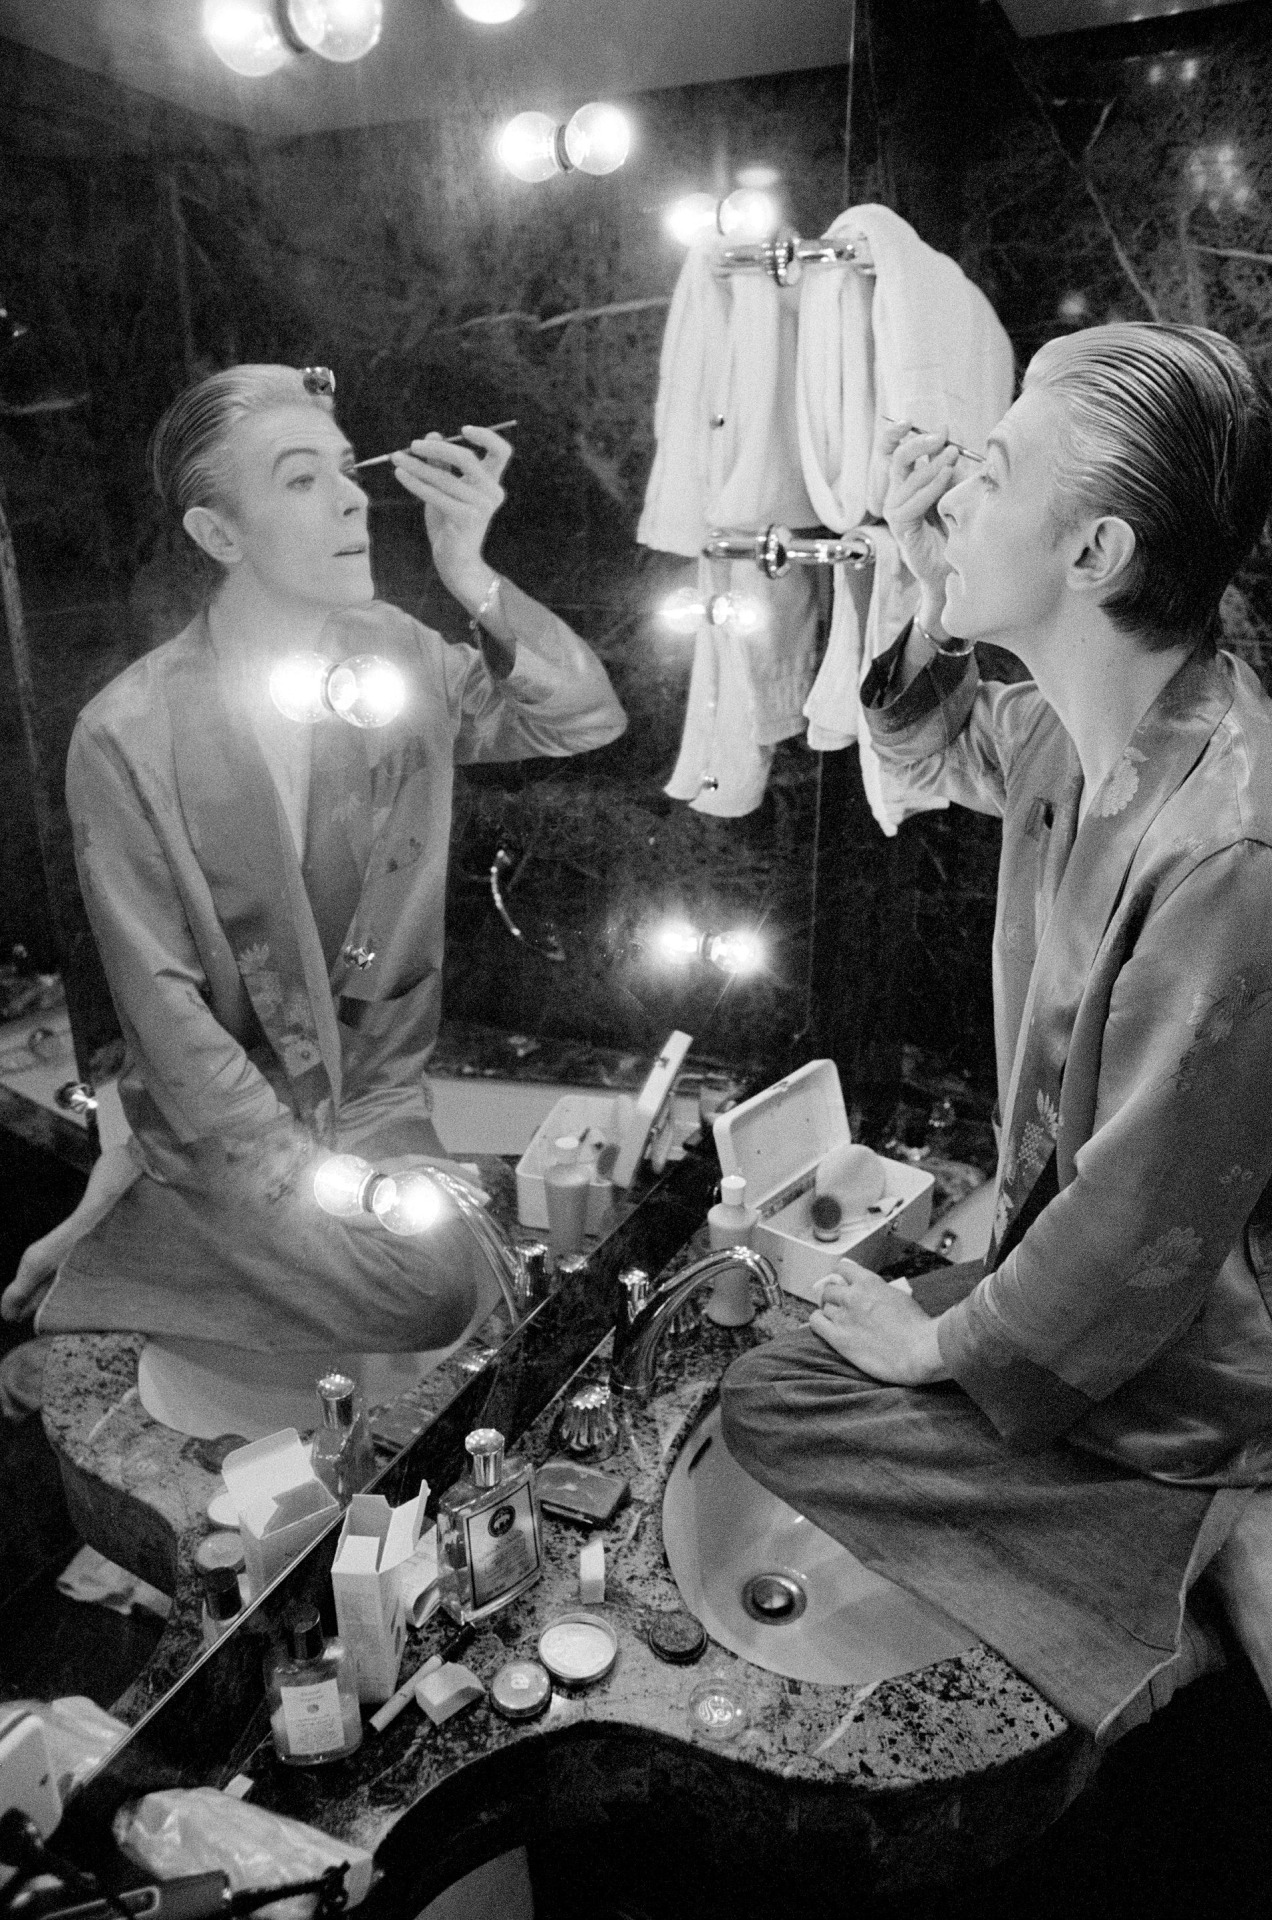 David Bowie prepares his make-up at L'Hotel in Paris ahead of photo shoot in 1976